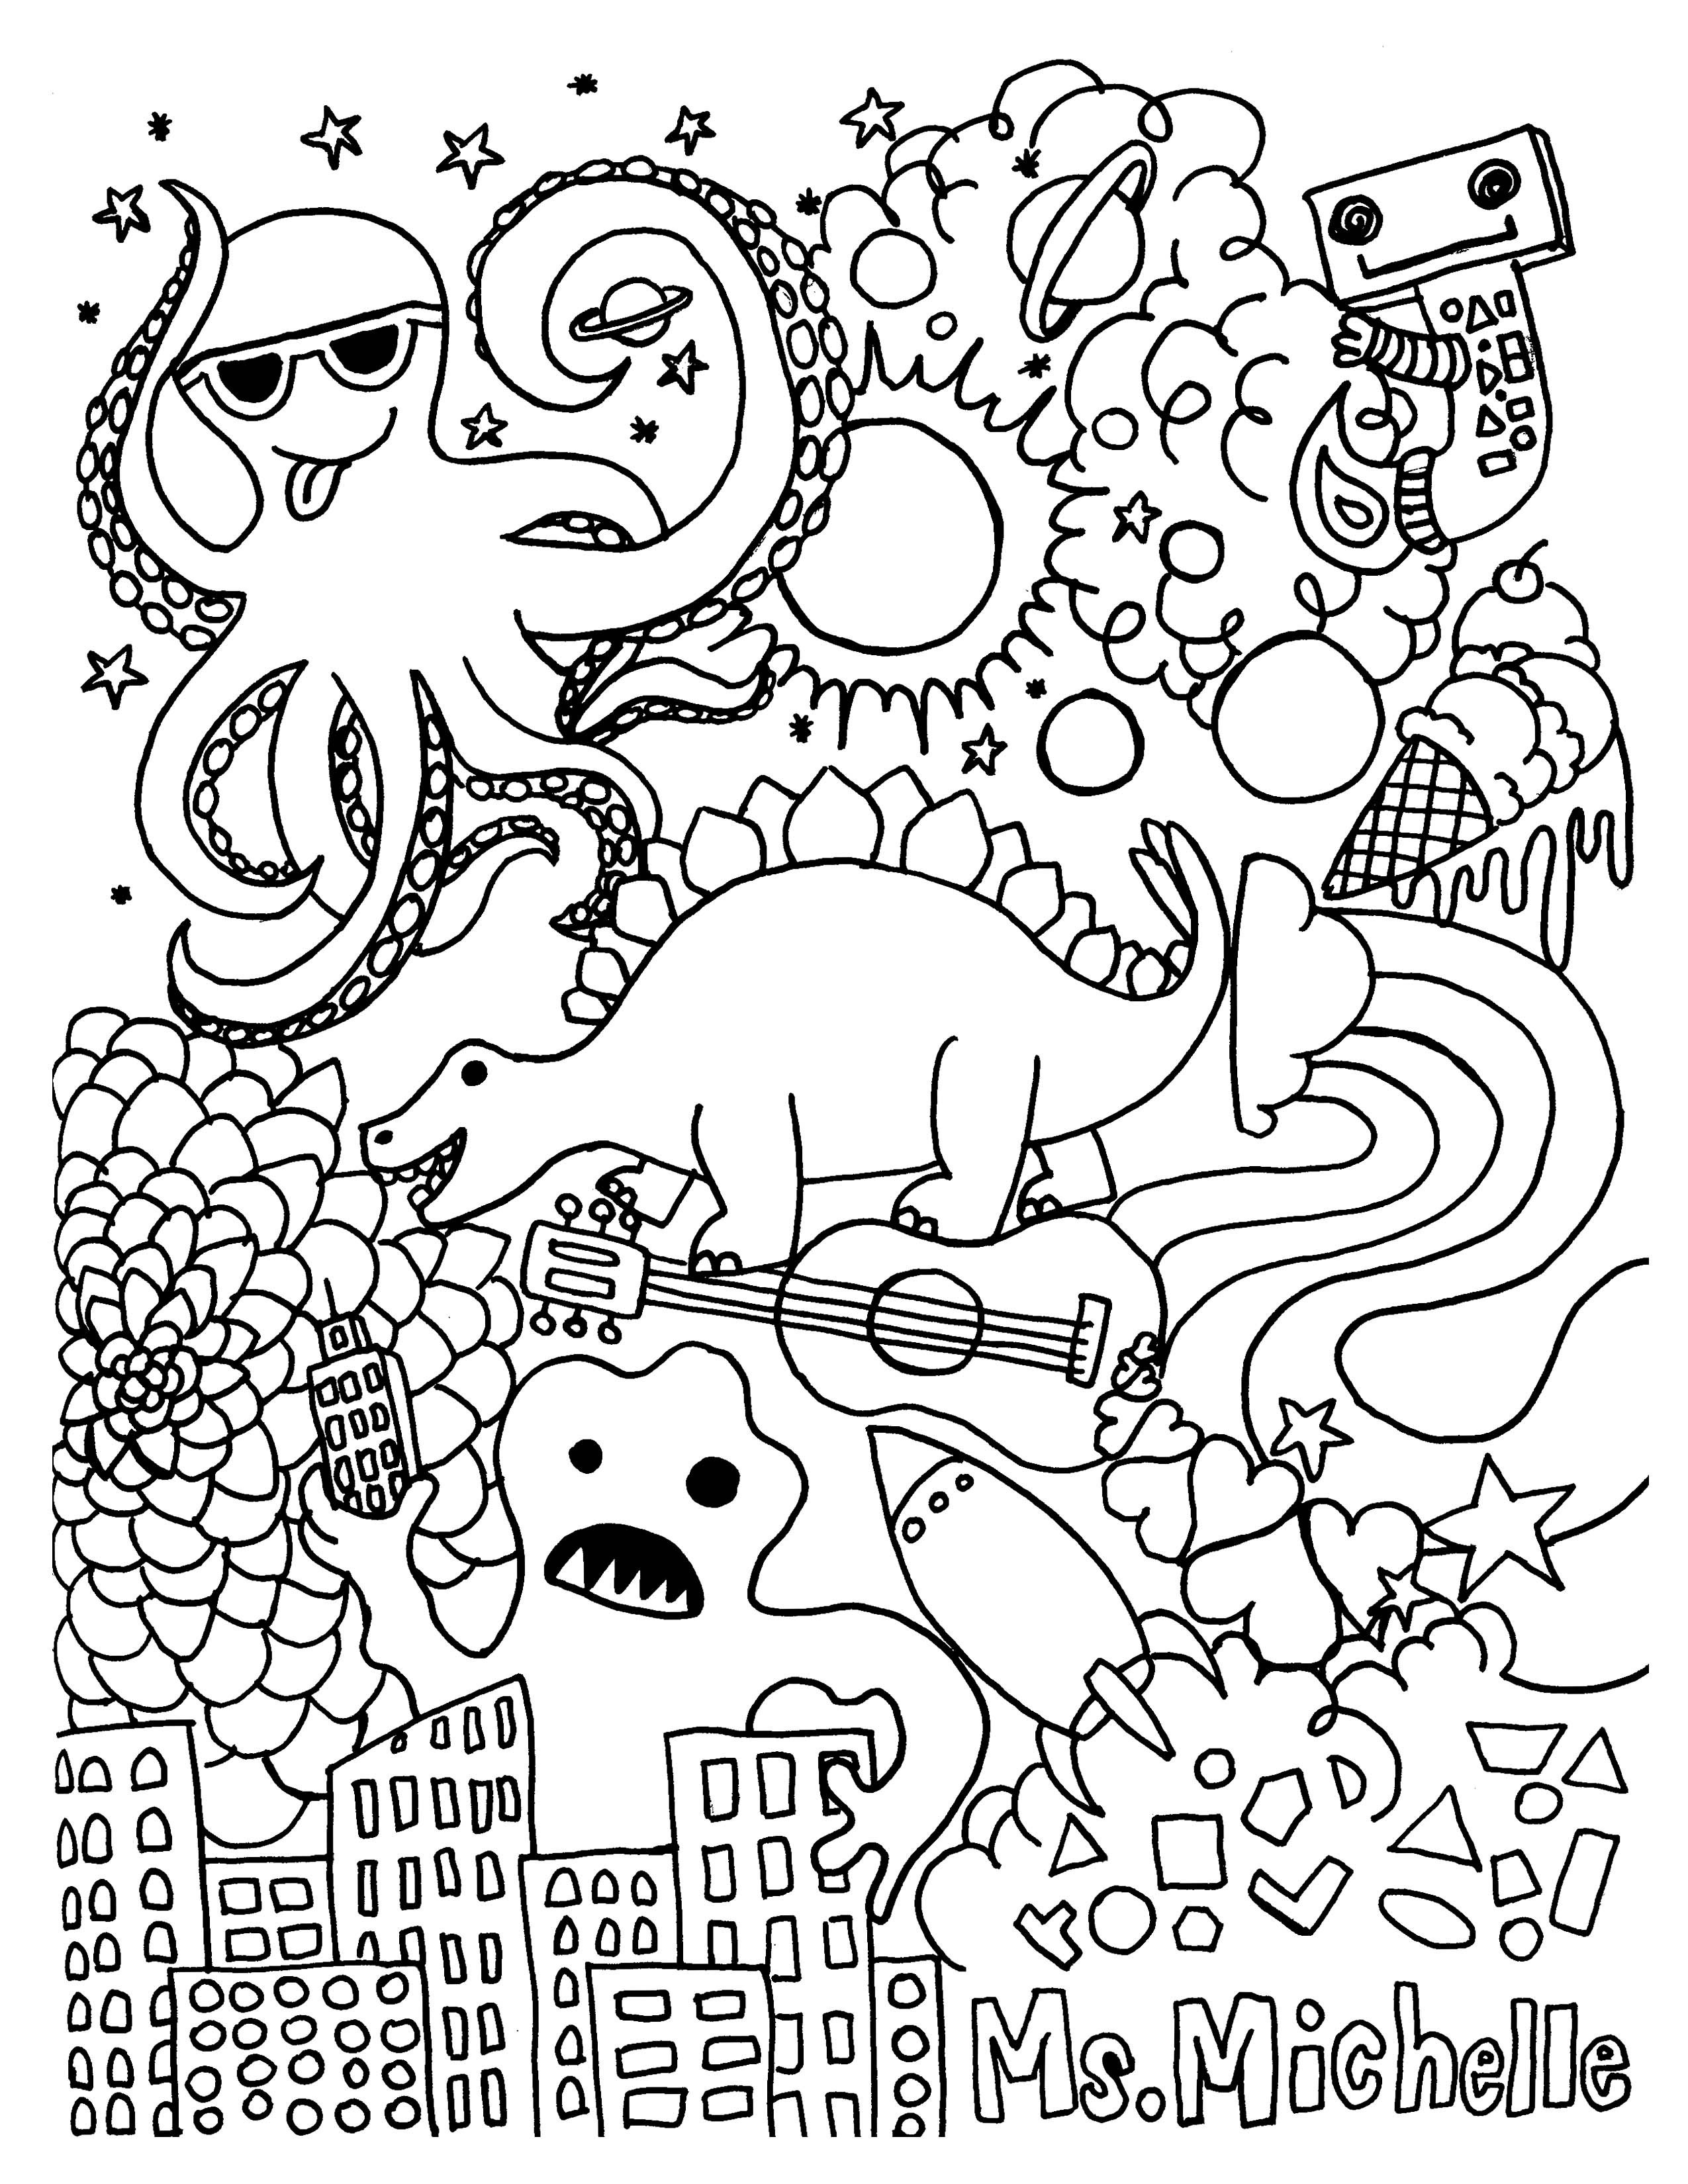 printable middle school coloring pages coloring pages for middle schoolers at getdrawings free middle coloring school pages printable